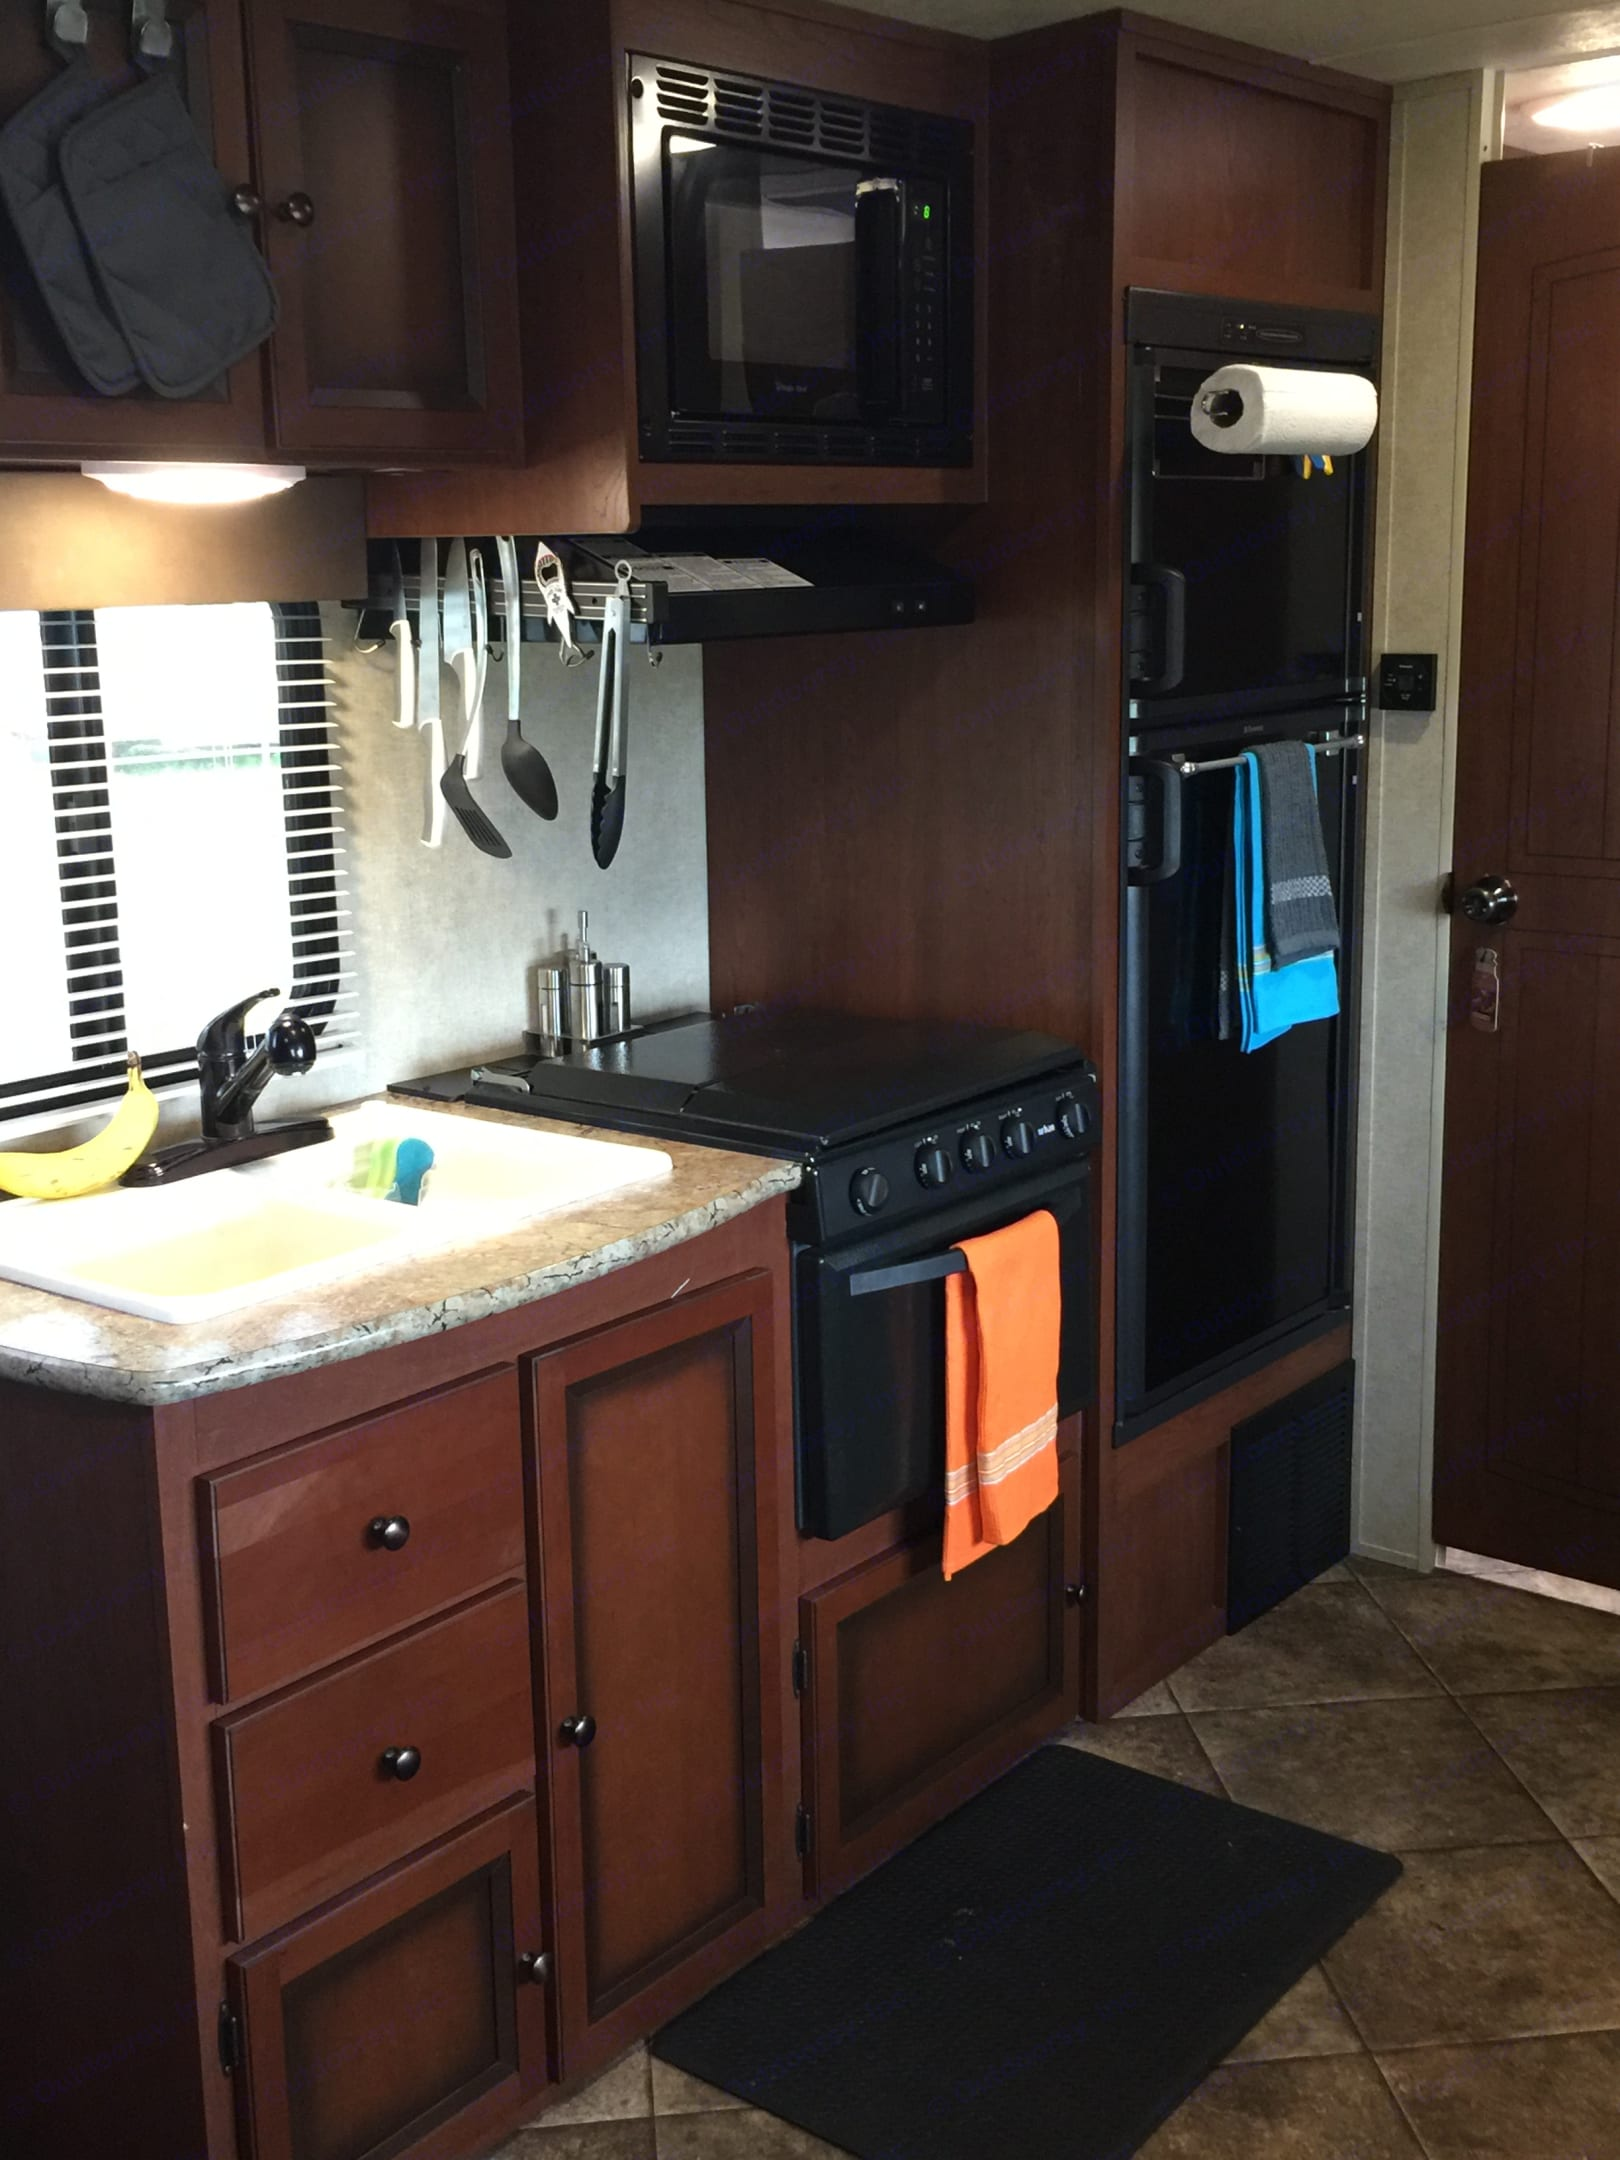 Full kitchen with 3 burners, stove, and microwave.  The fridge has a separate freezer and the sink has a smaller wash area.. Forest River palomino 2014